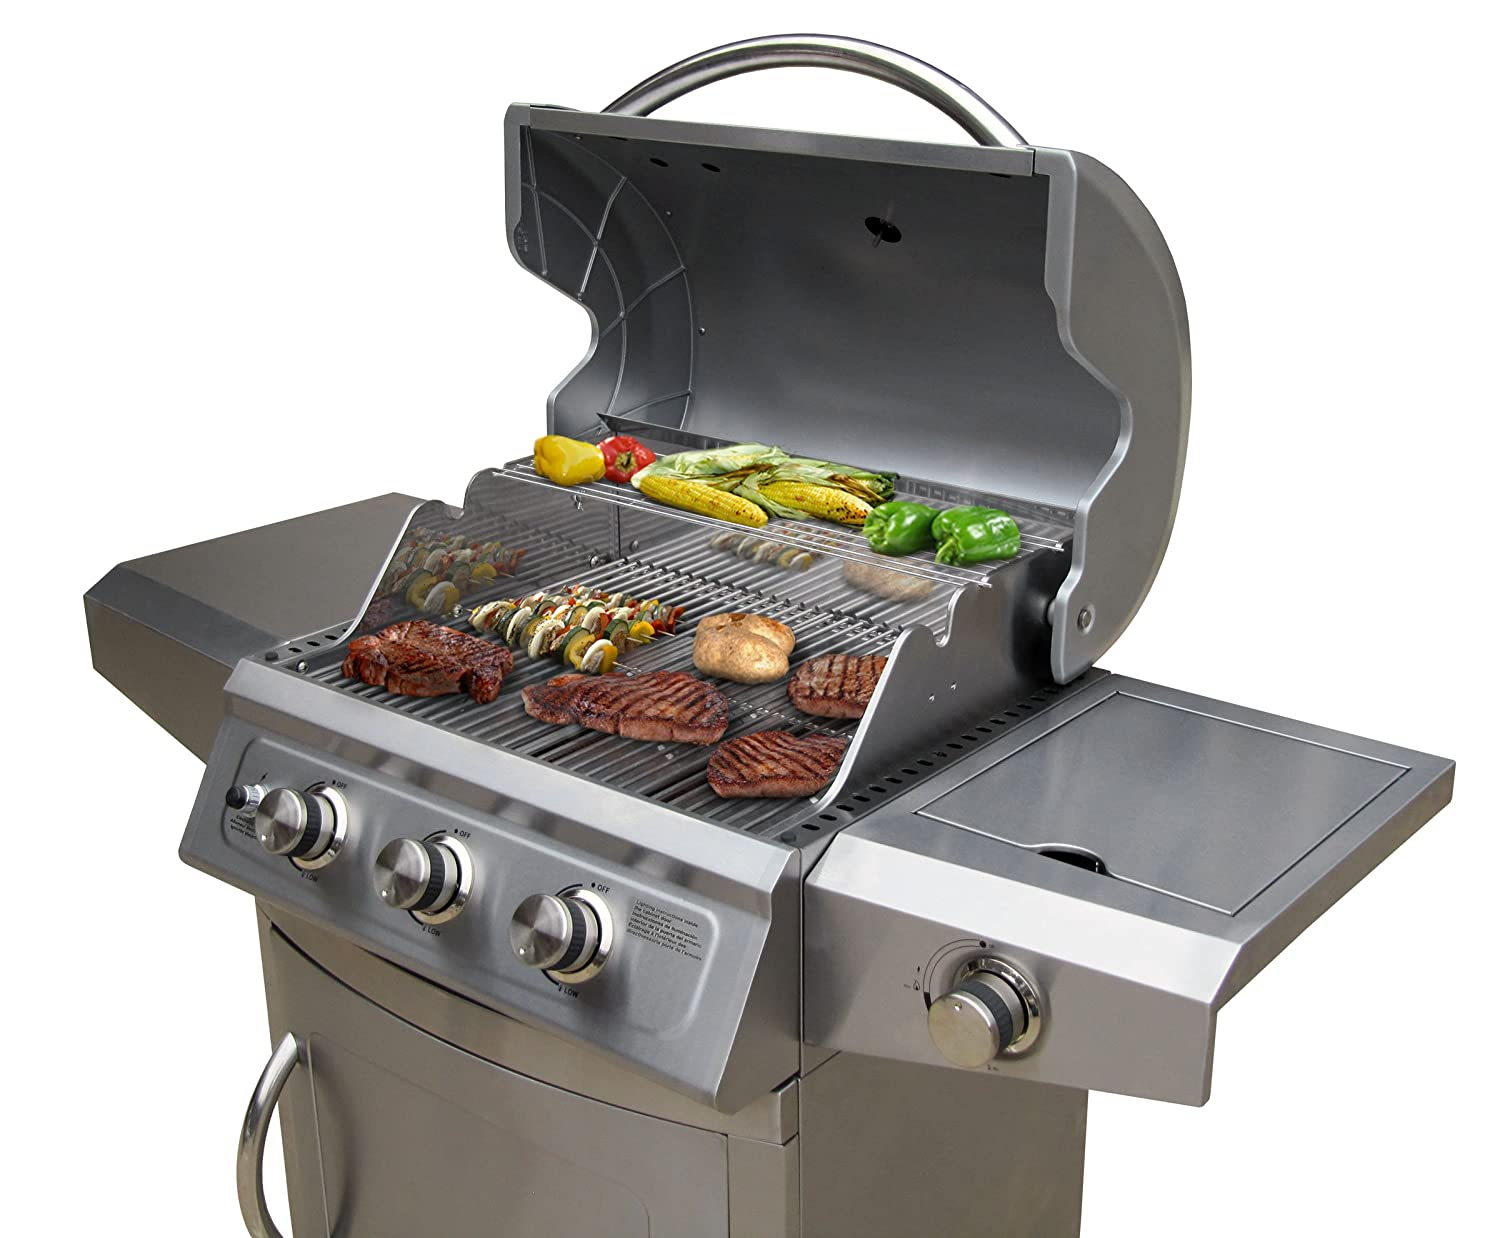 Landmann Gasgrill Triton 3 : Amazon landmann falcon burner lp gas grill with side